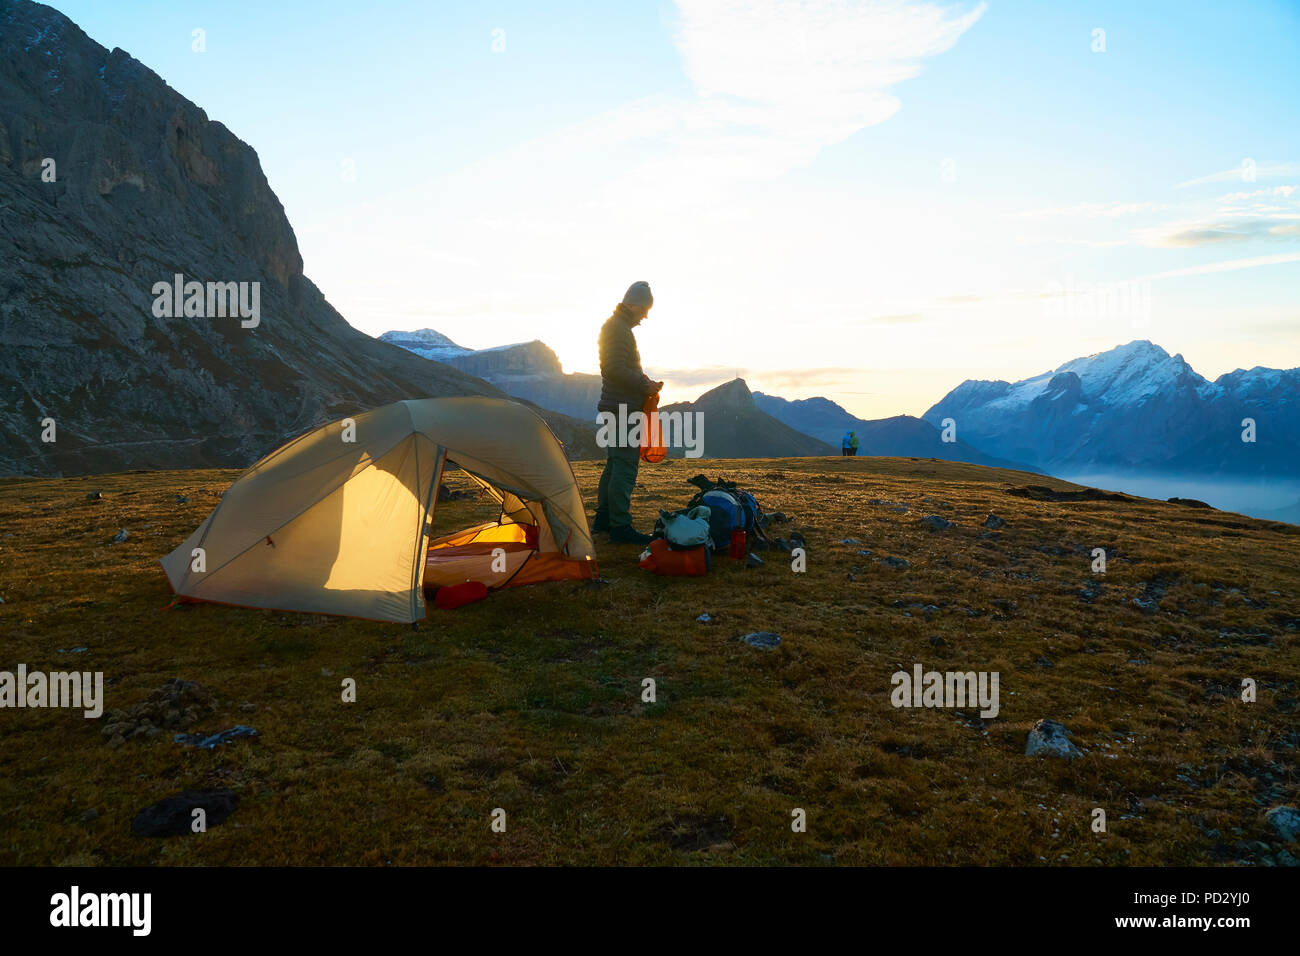 Hiker by tent at sunset, Canazei, Trentino-Alto Adige, Italy - Stock Image